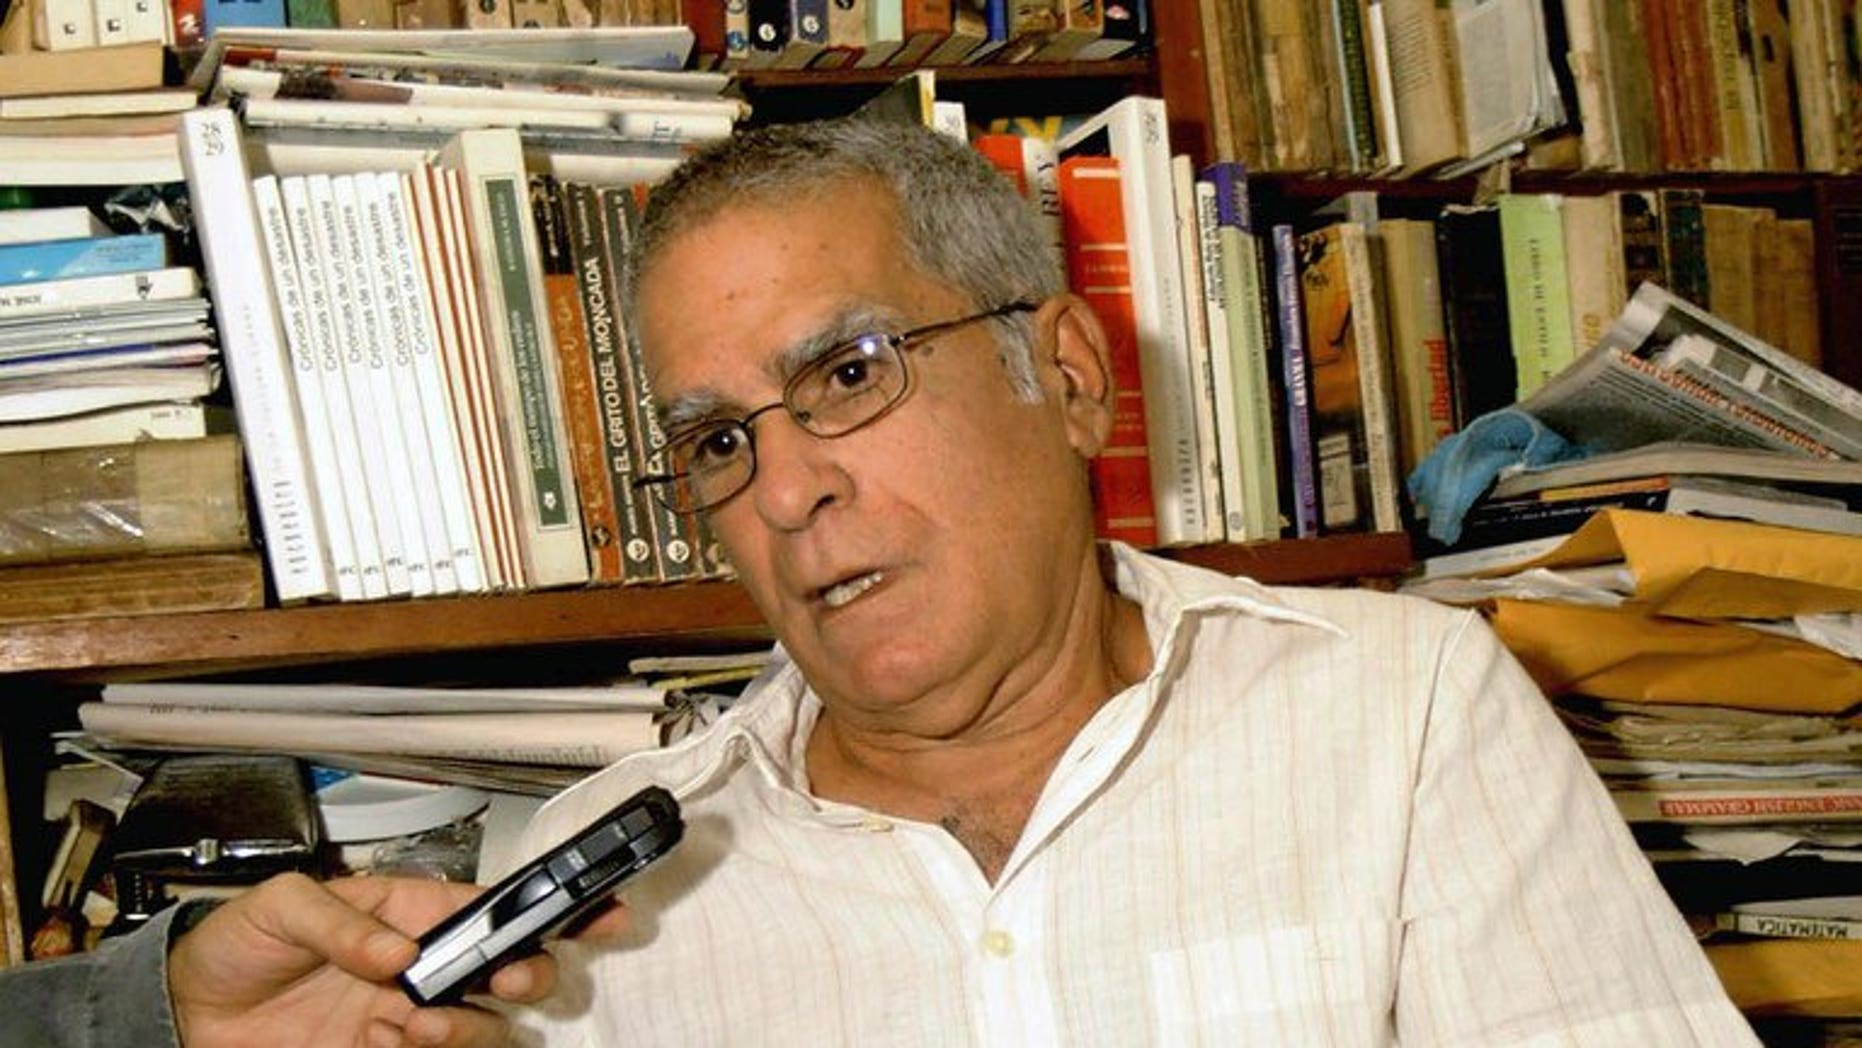 A file picture taken on November 29, 2004 shows Cuban dissident Oscar Espinosa Chepe speaking during an interview at his house in Havana.